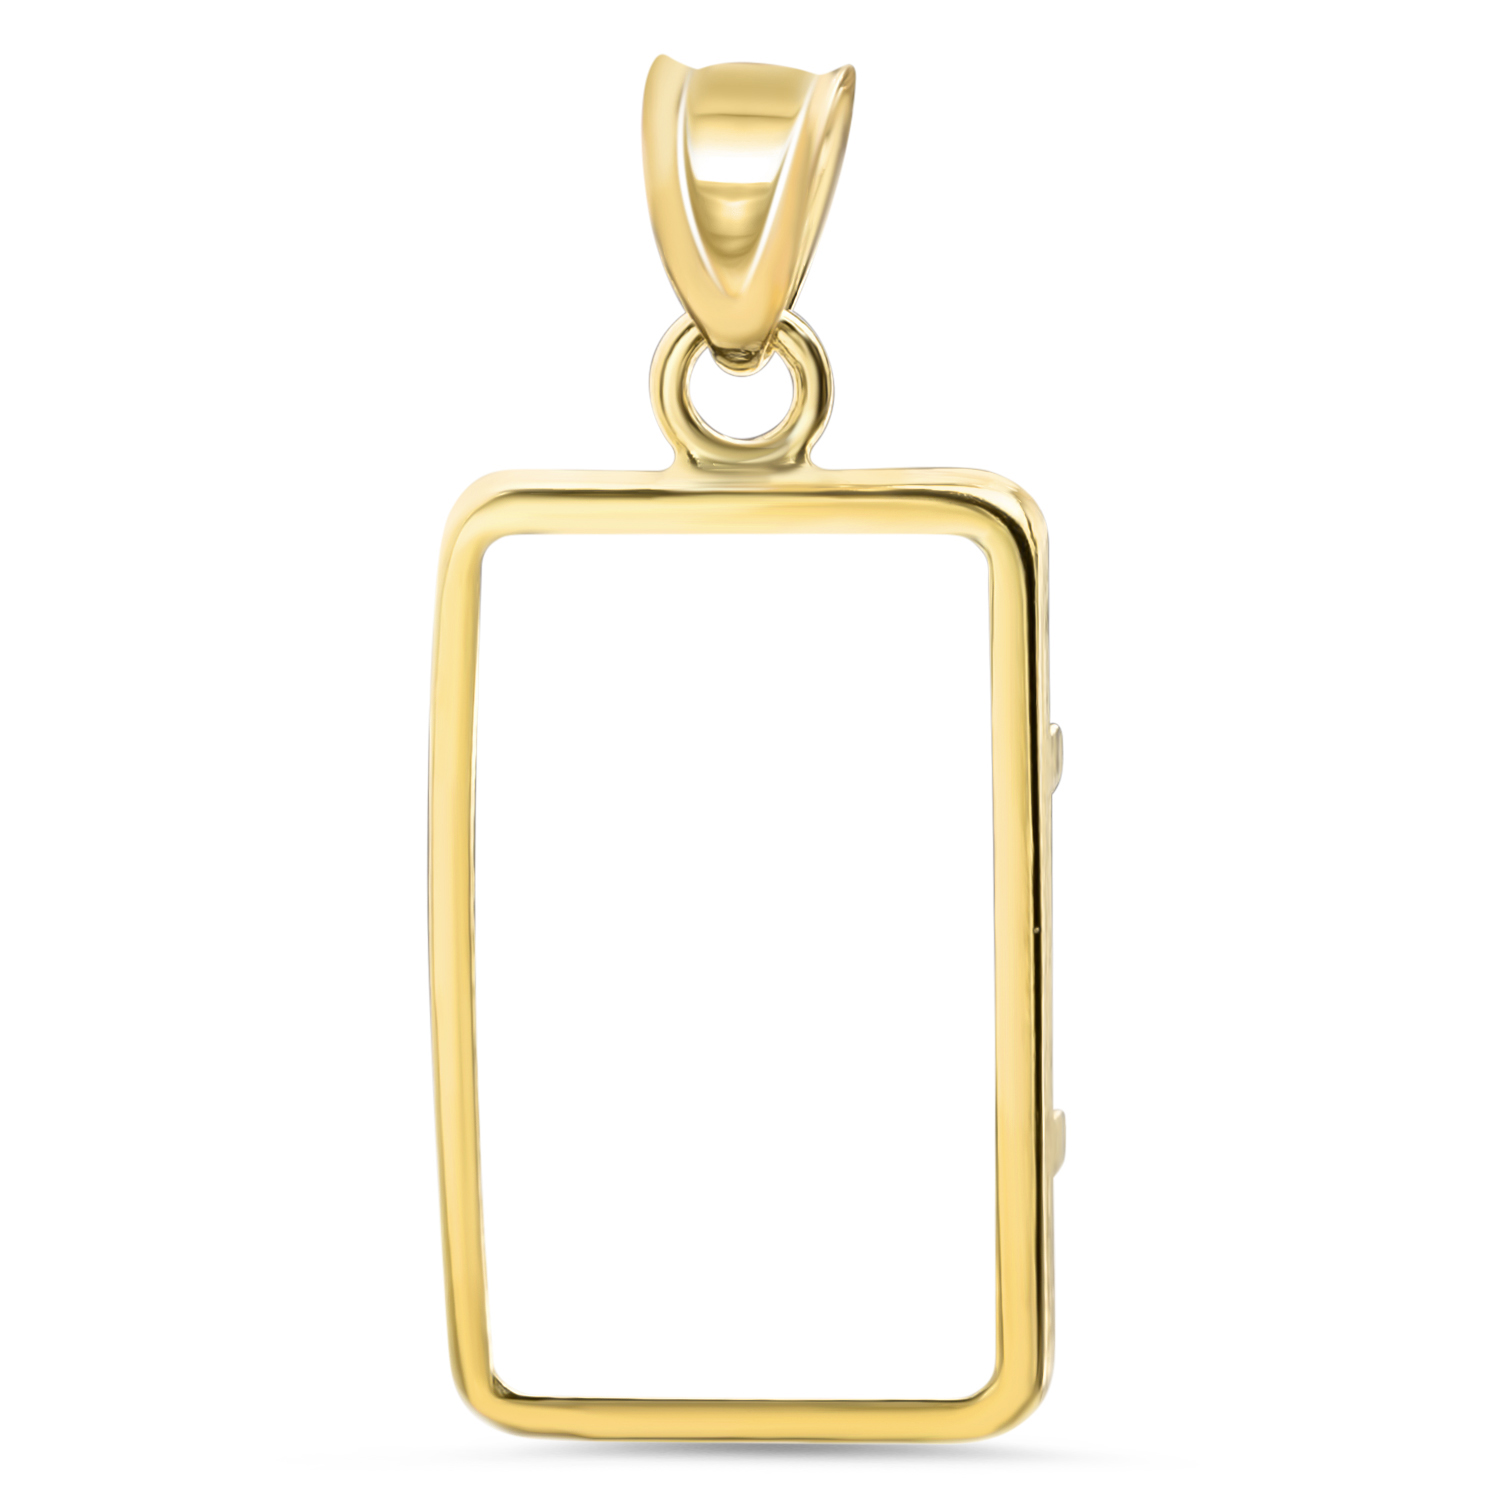 14K Gold Screw-Top Plain-Front Bezel (5 gram CS Gold Bar)